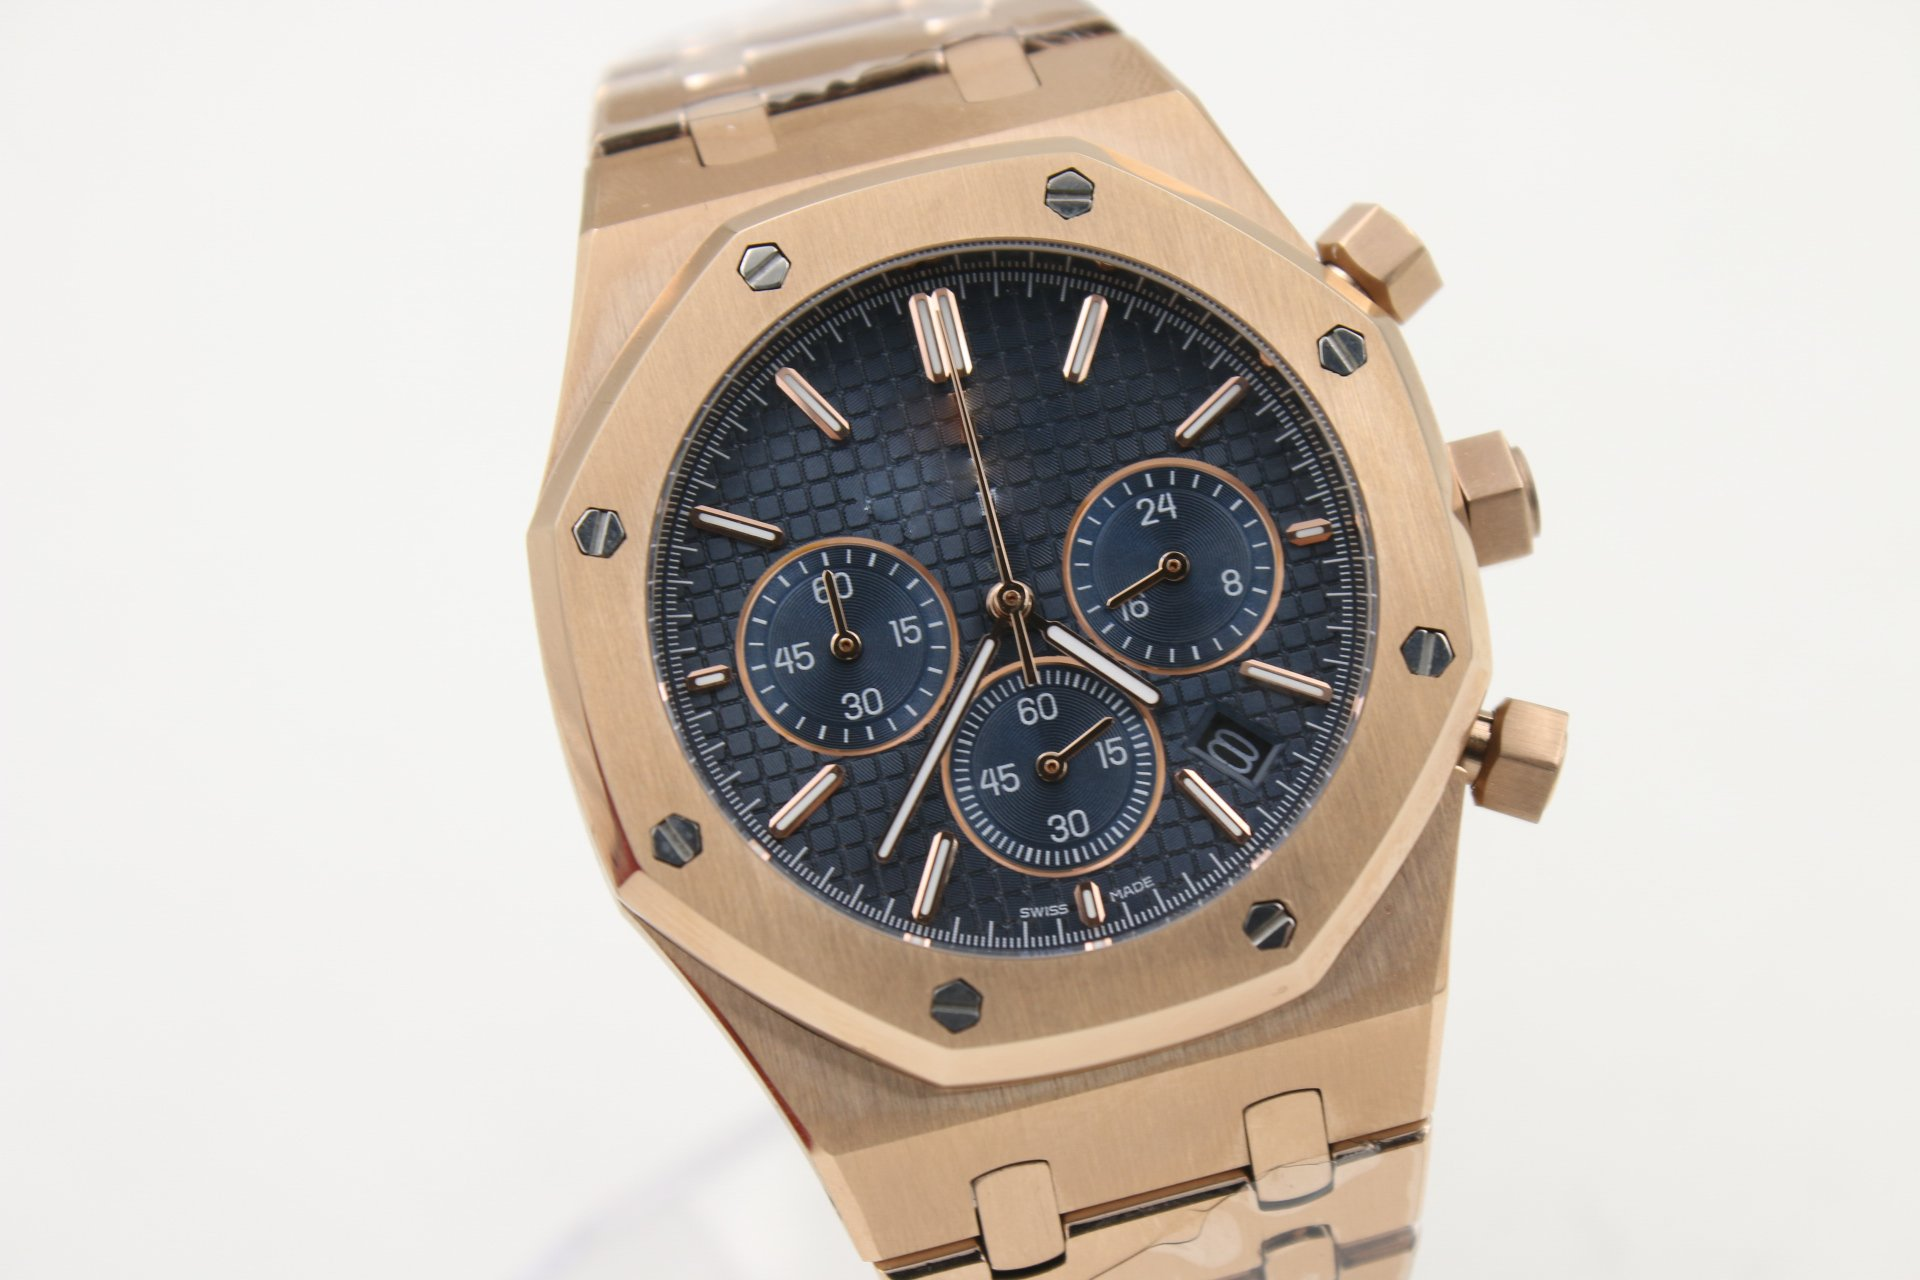 My_TimeZone Luxury Brand Top quality stainless steel Gold color Japanese quartz chronograph watch watches